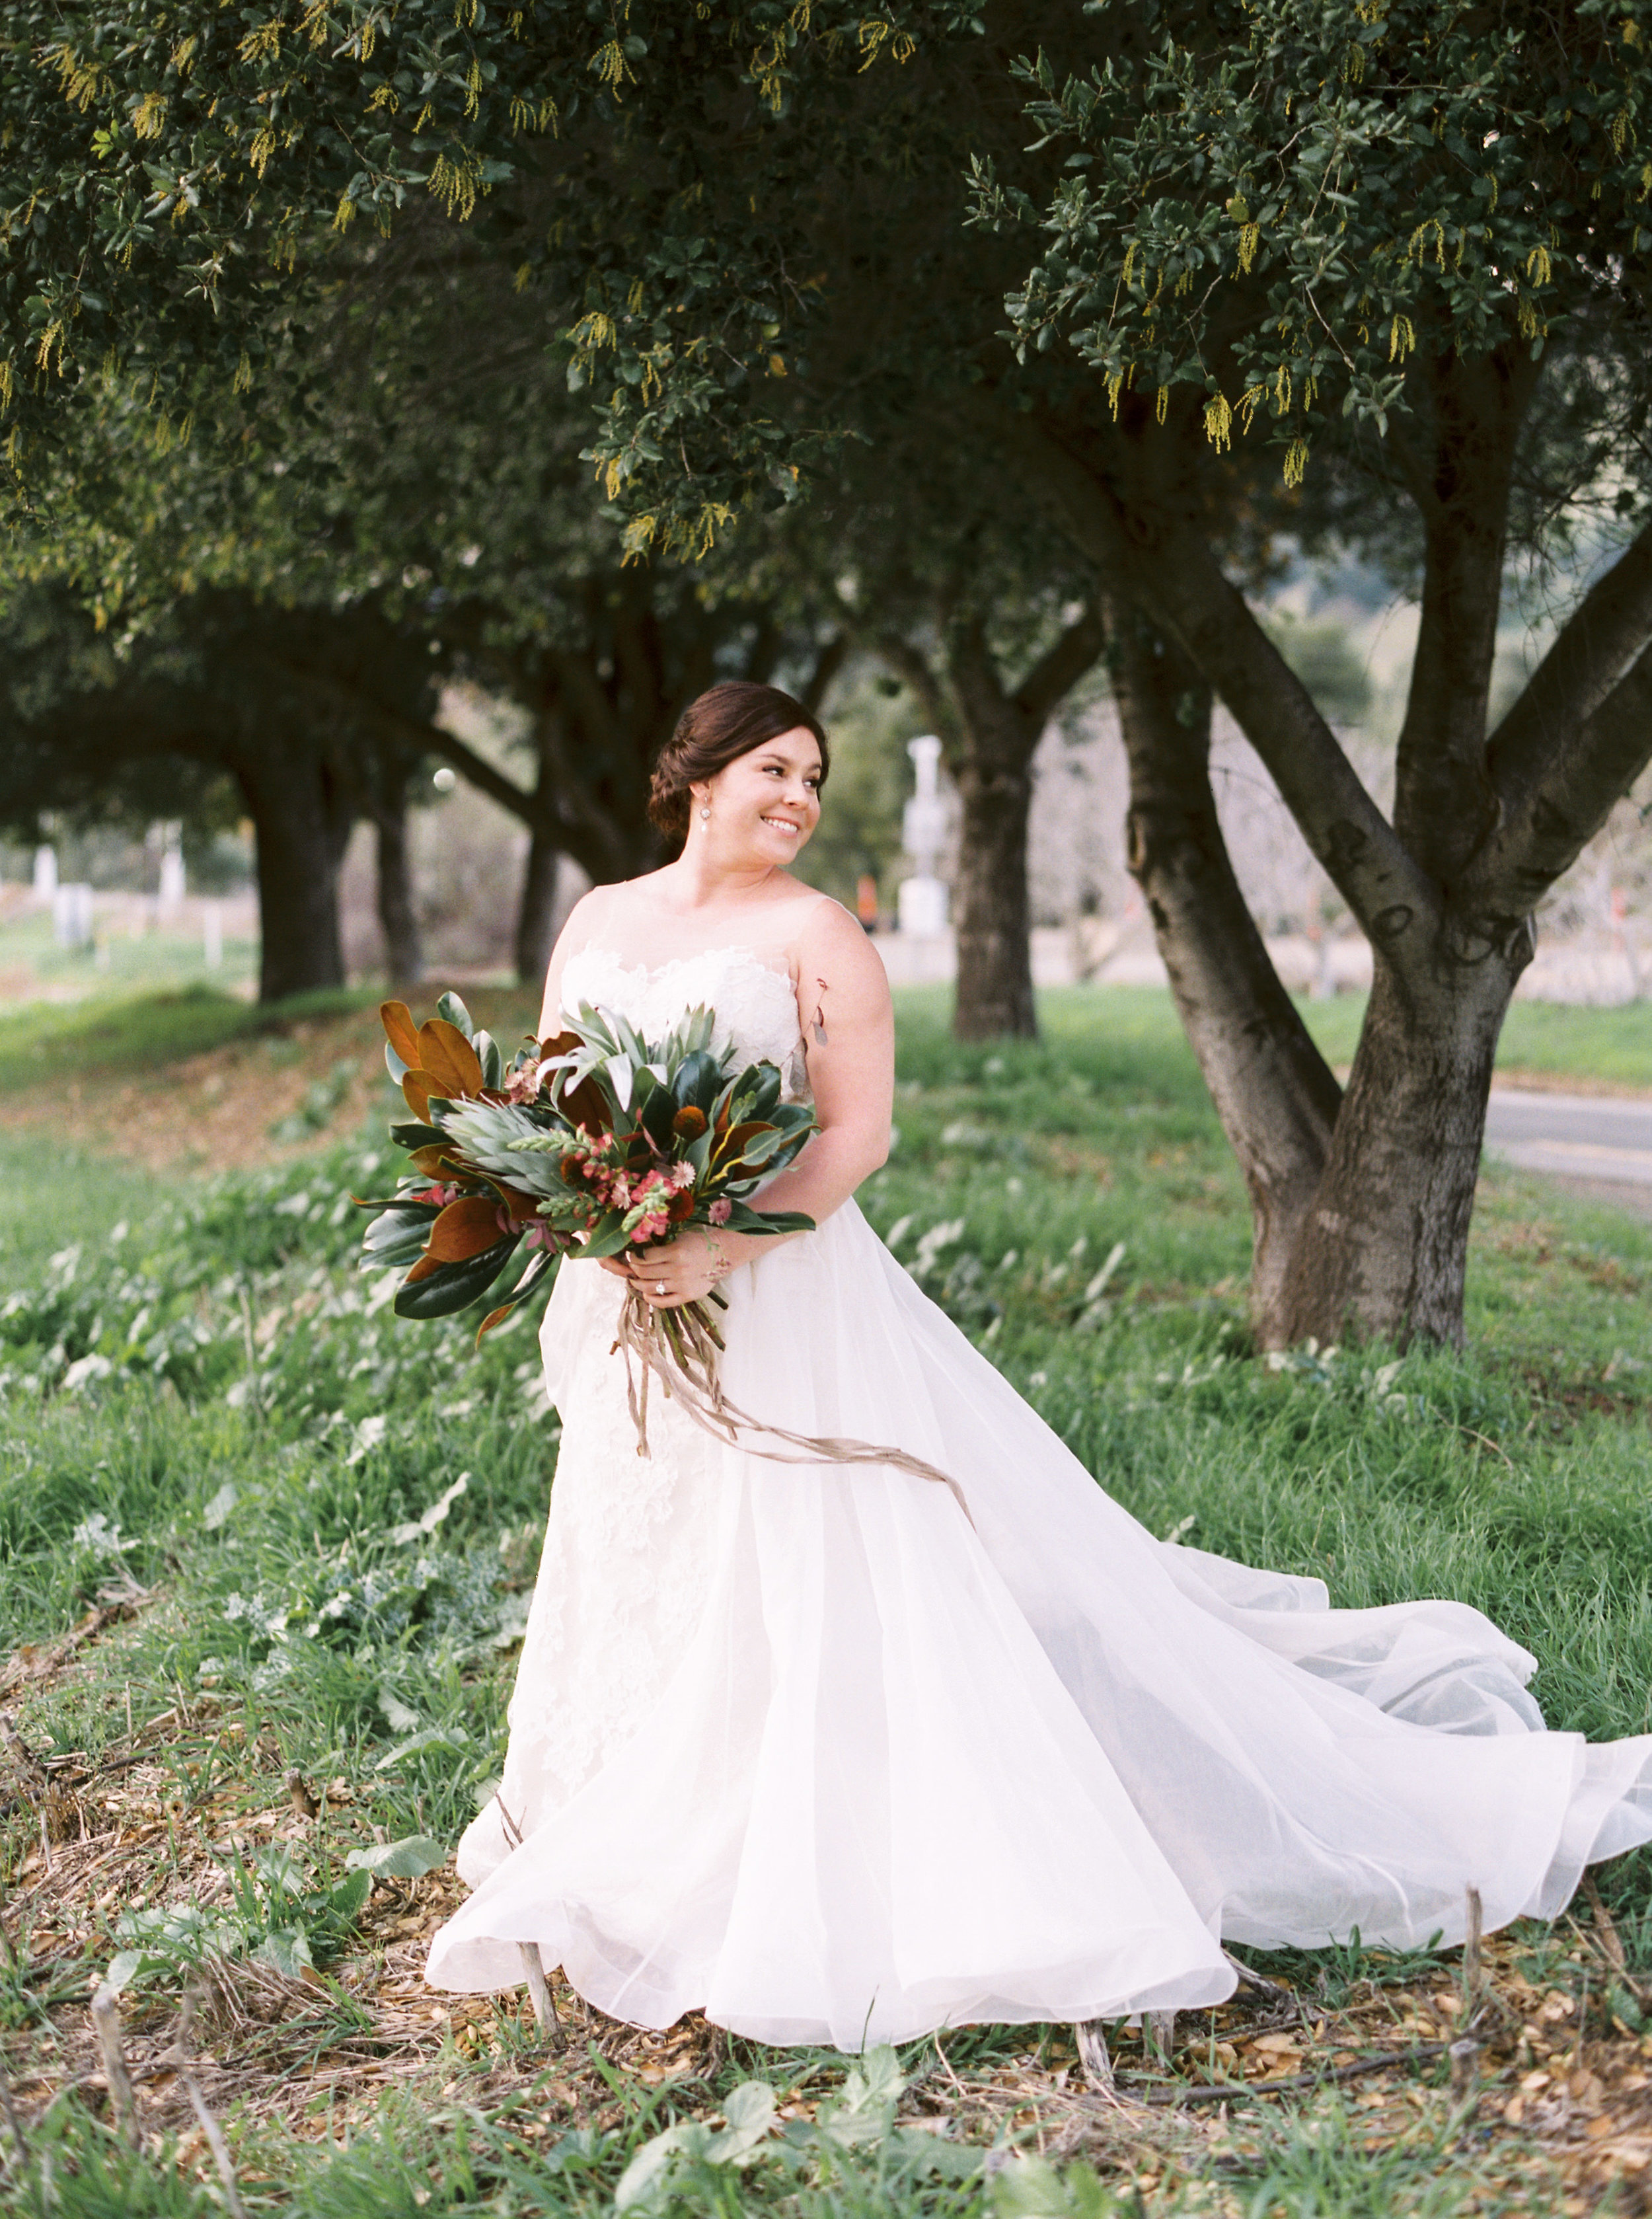 boho-inspired-wedding-at-casa-bella-in-sunol-california-55.jpg